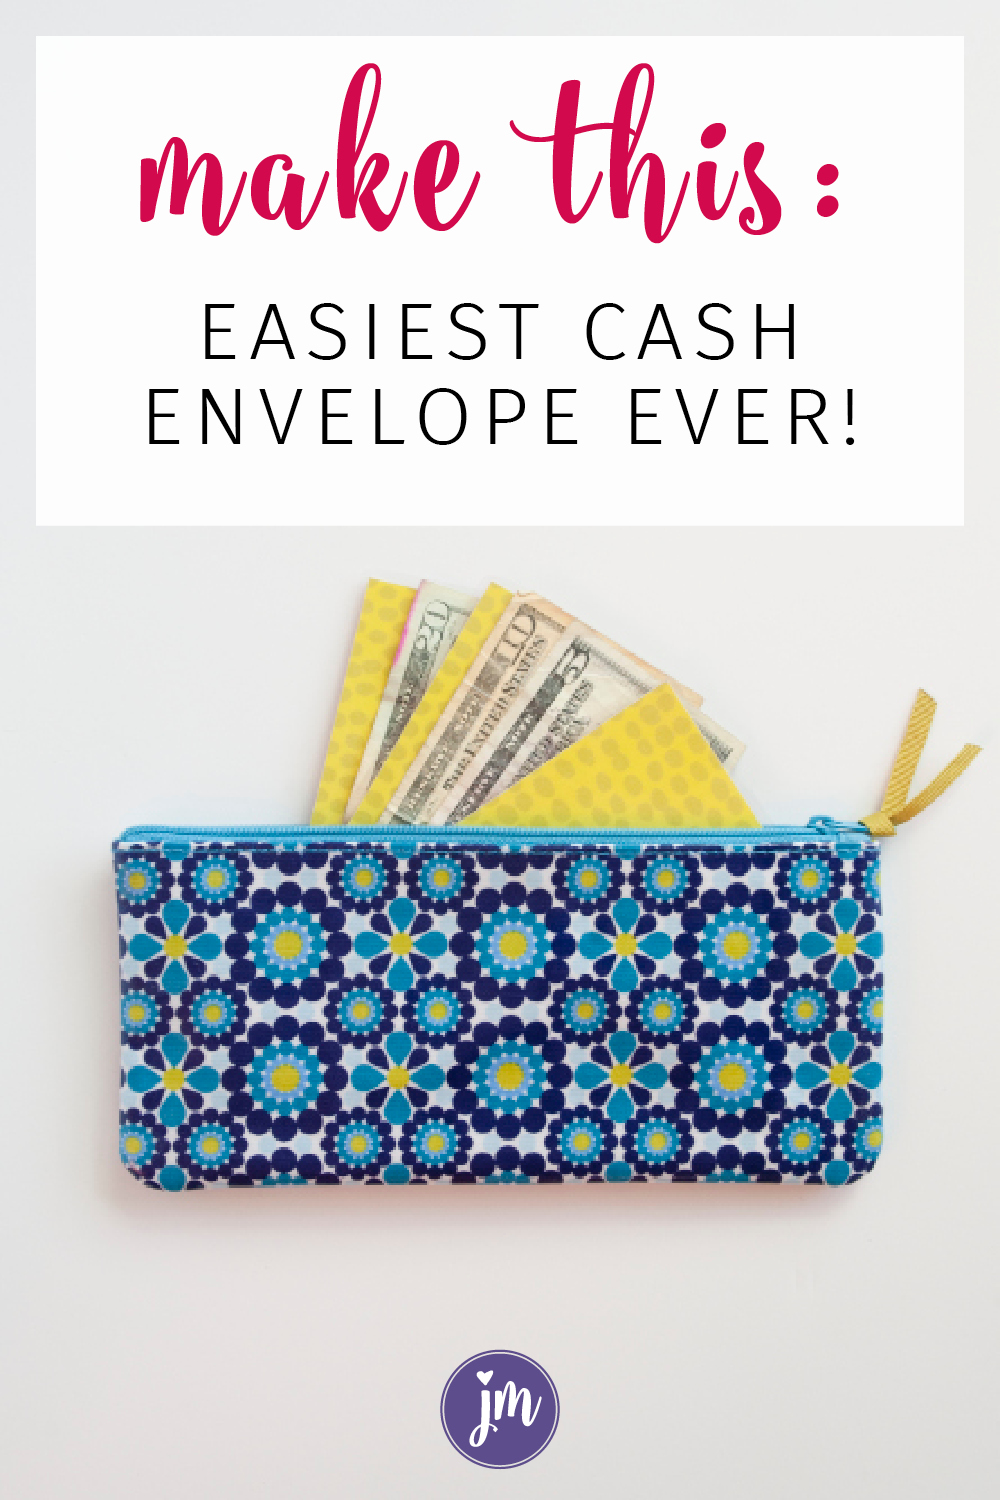 photograph about Dave Ramsey Envelope System Printable identify The Least complicated Do-it-yourself Income Envelope Process Jennie Moraitis